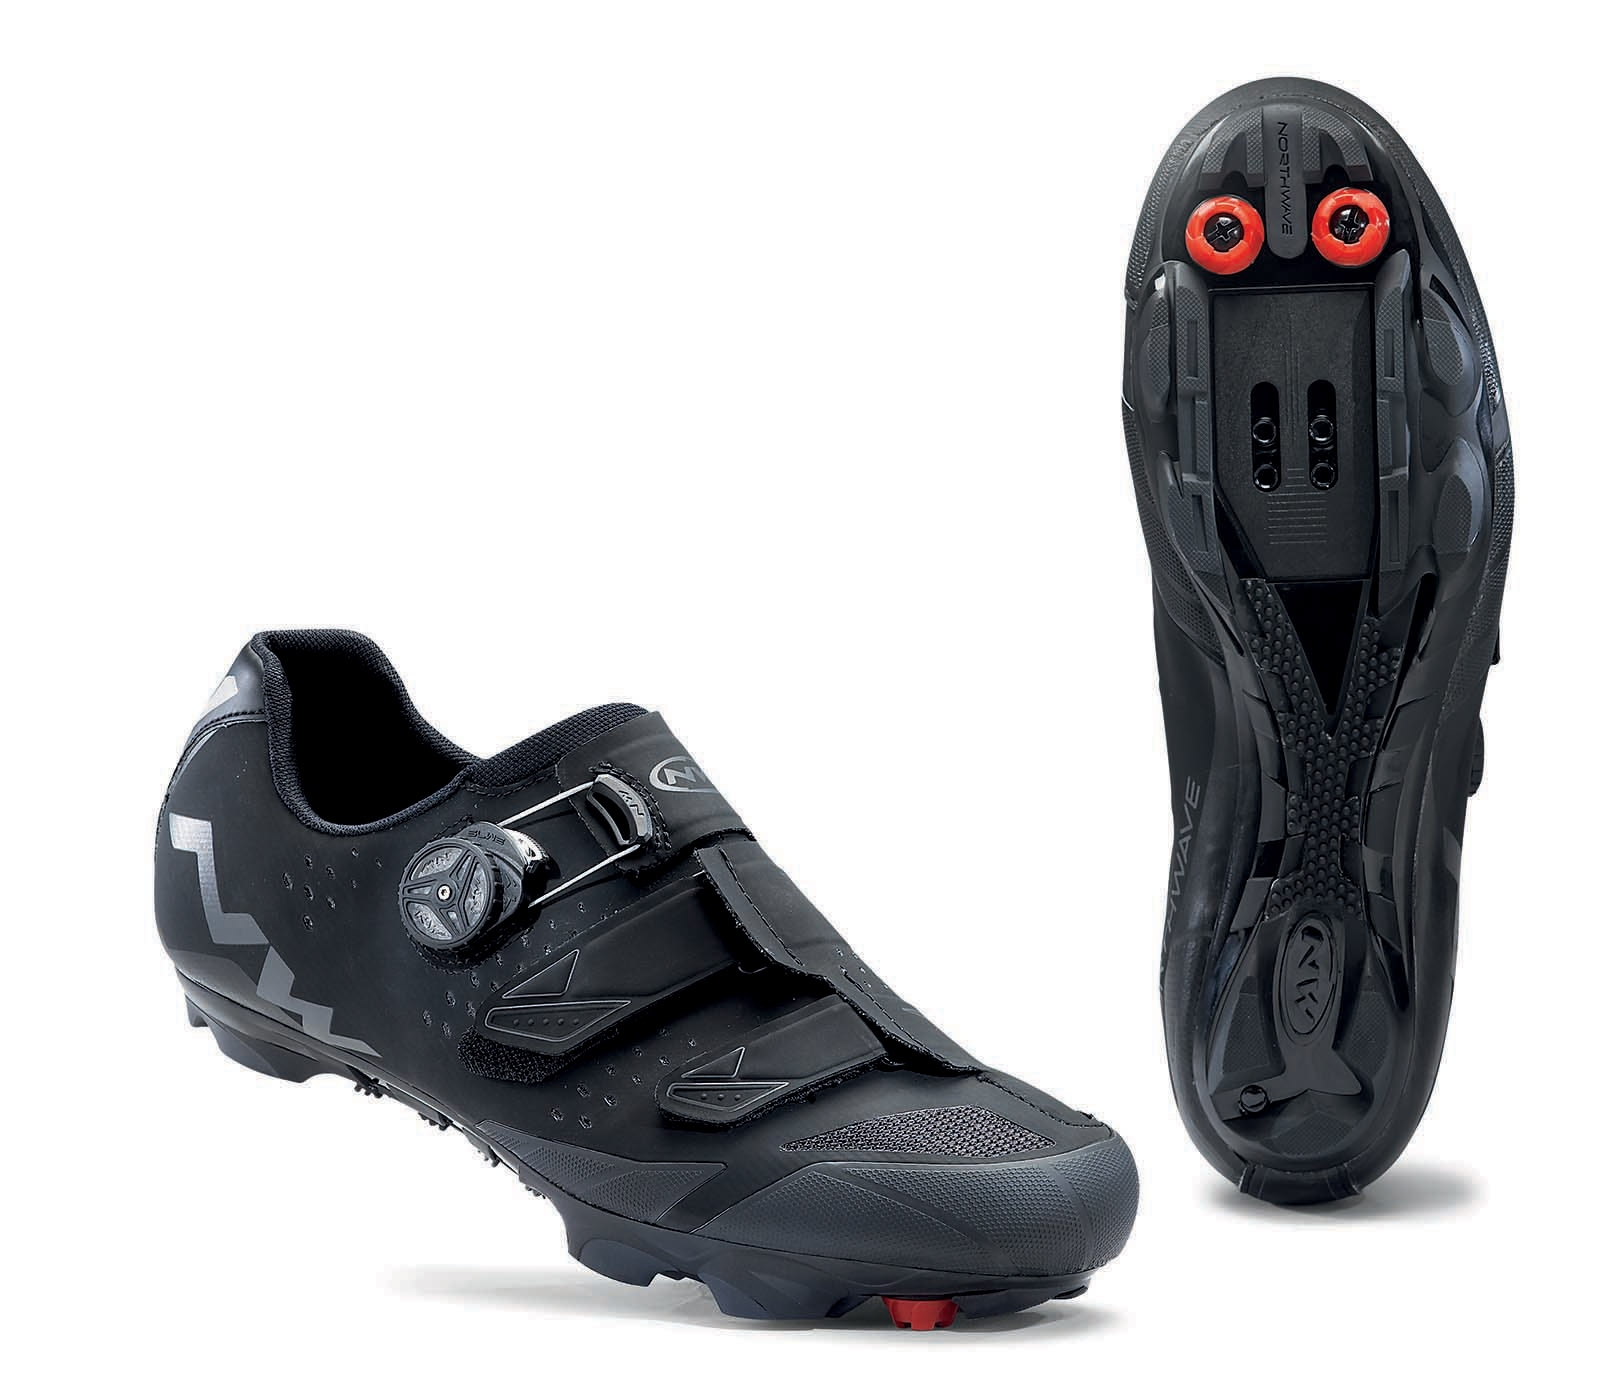 Mtb Northwave Cycling Scream Plus Black Shoes 3AqcSjRL54